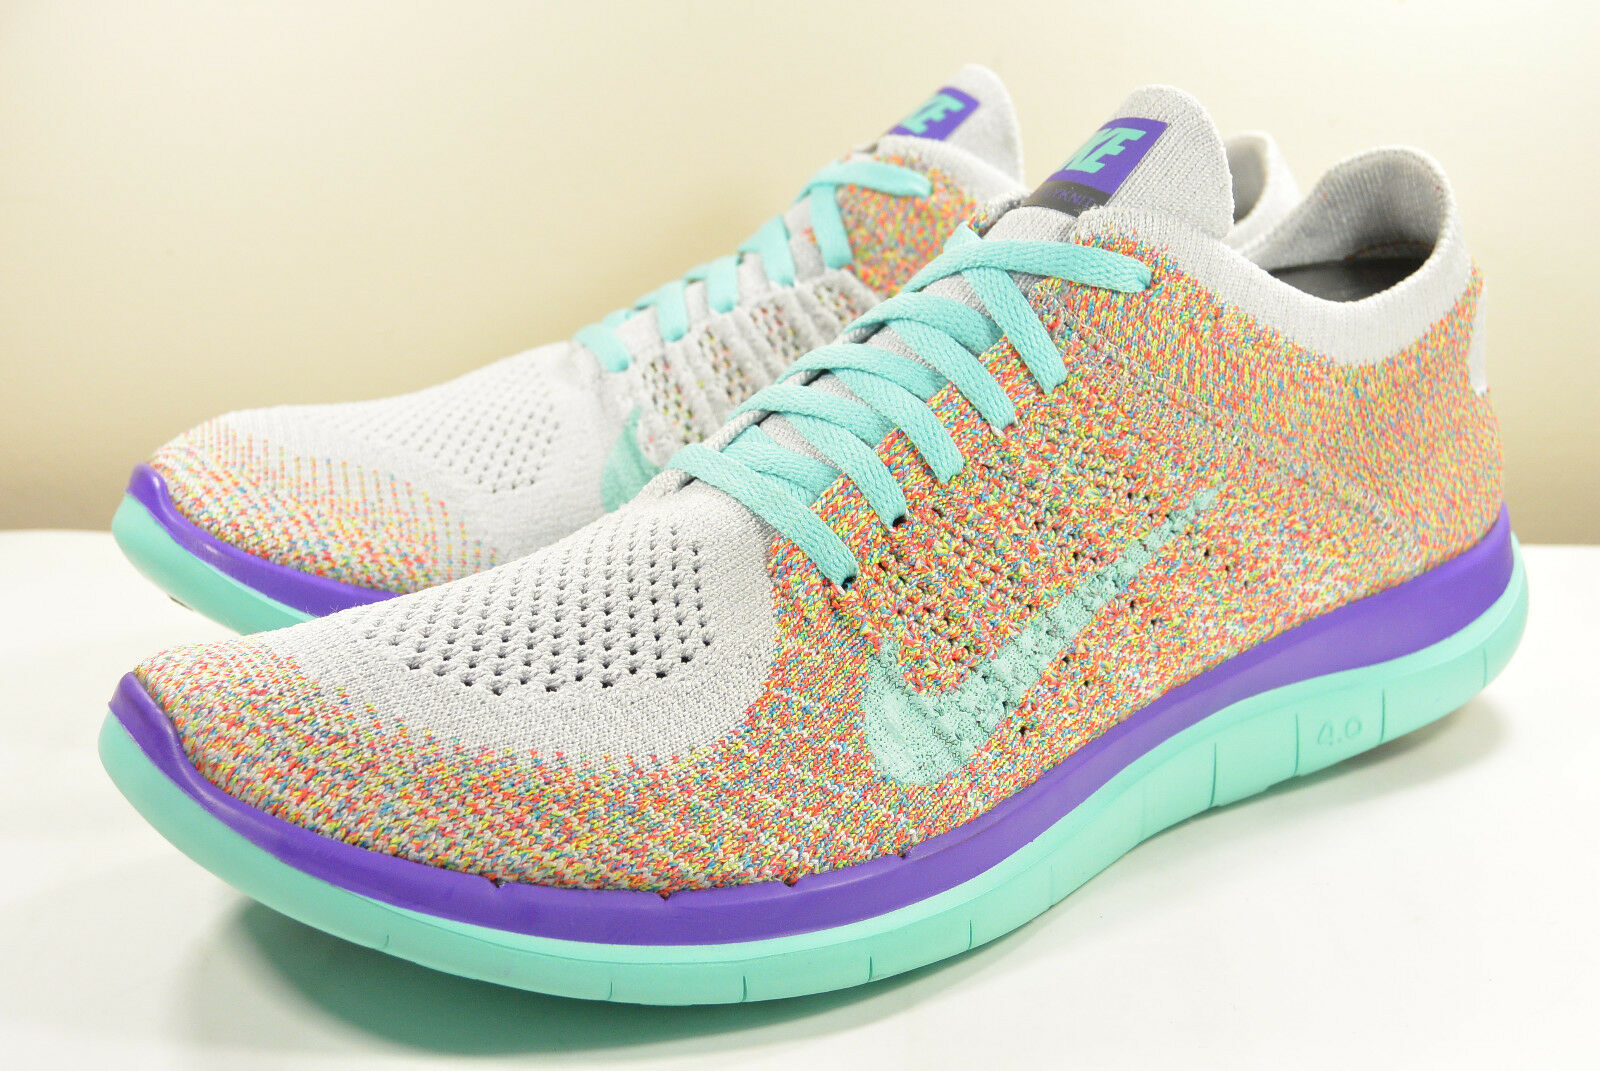 DS 2015 NIKE FREE 4.0 FLYKNIT ID MULTI-COLOR TEAL 10 PRESTO RIFT OLYMPIC MAX AIR